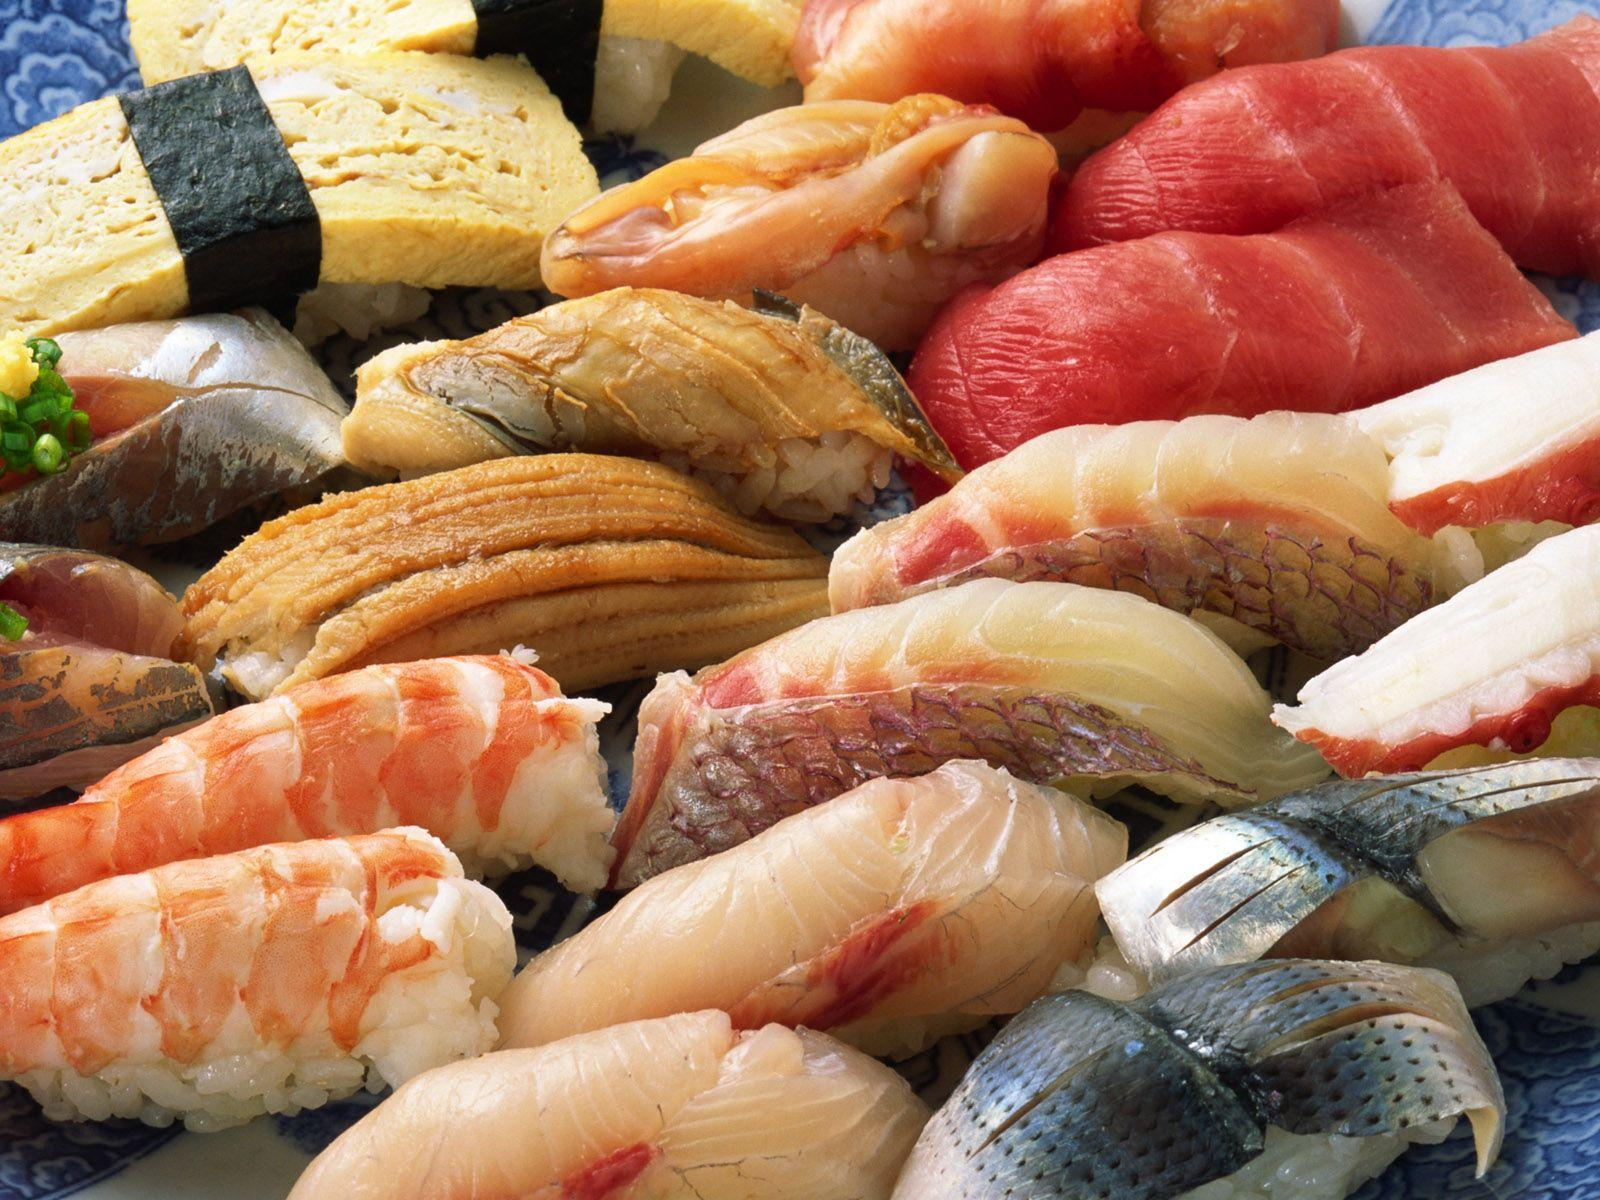 Pieces of seafood wallpapers and images - wallpapers, pictures, photos